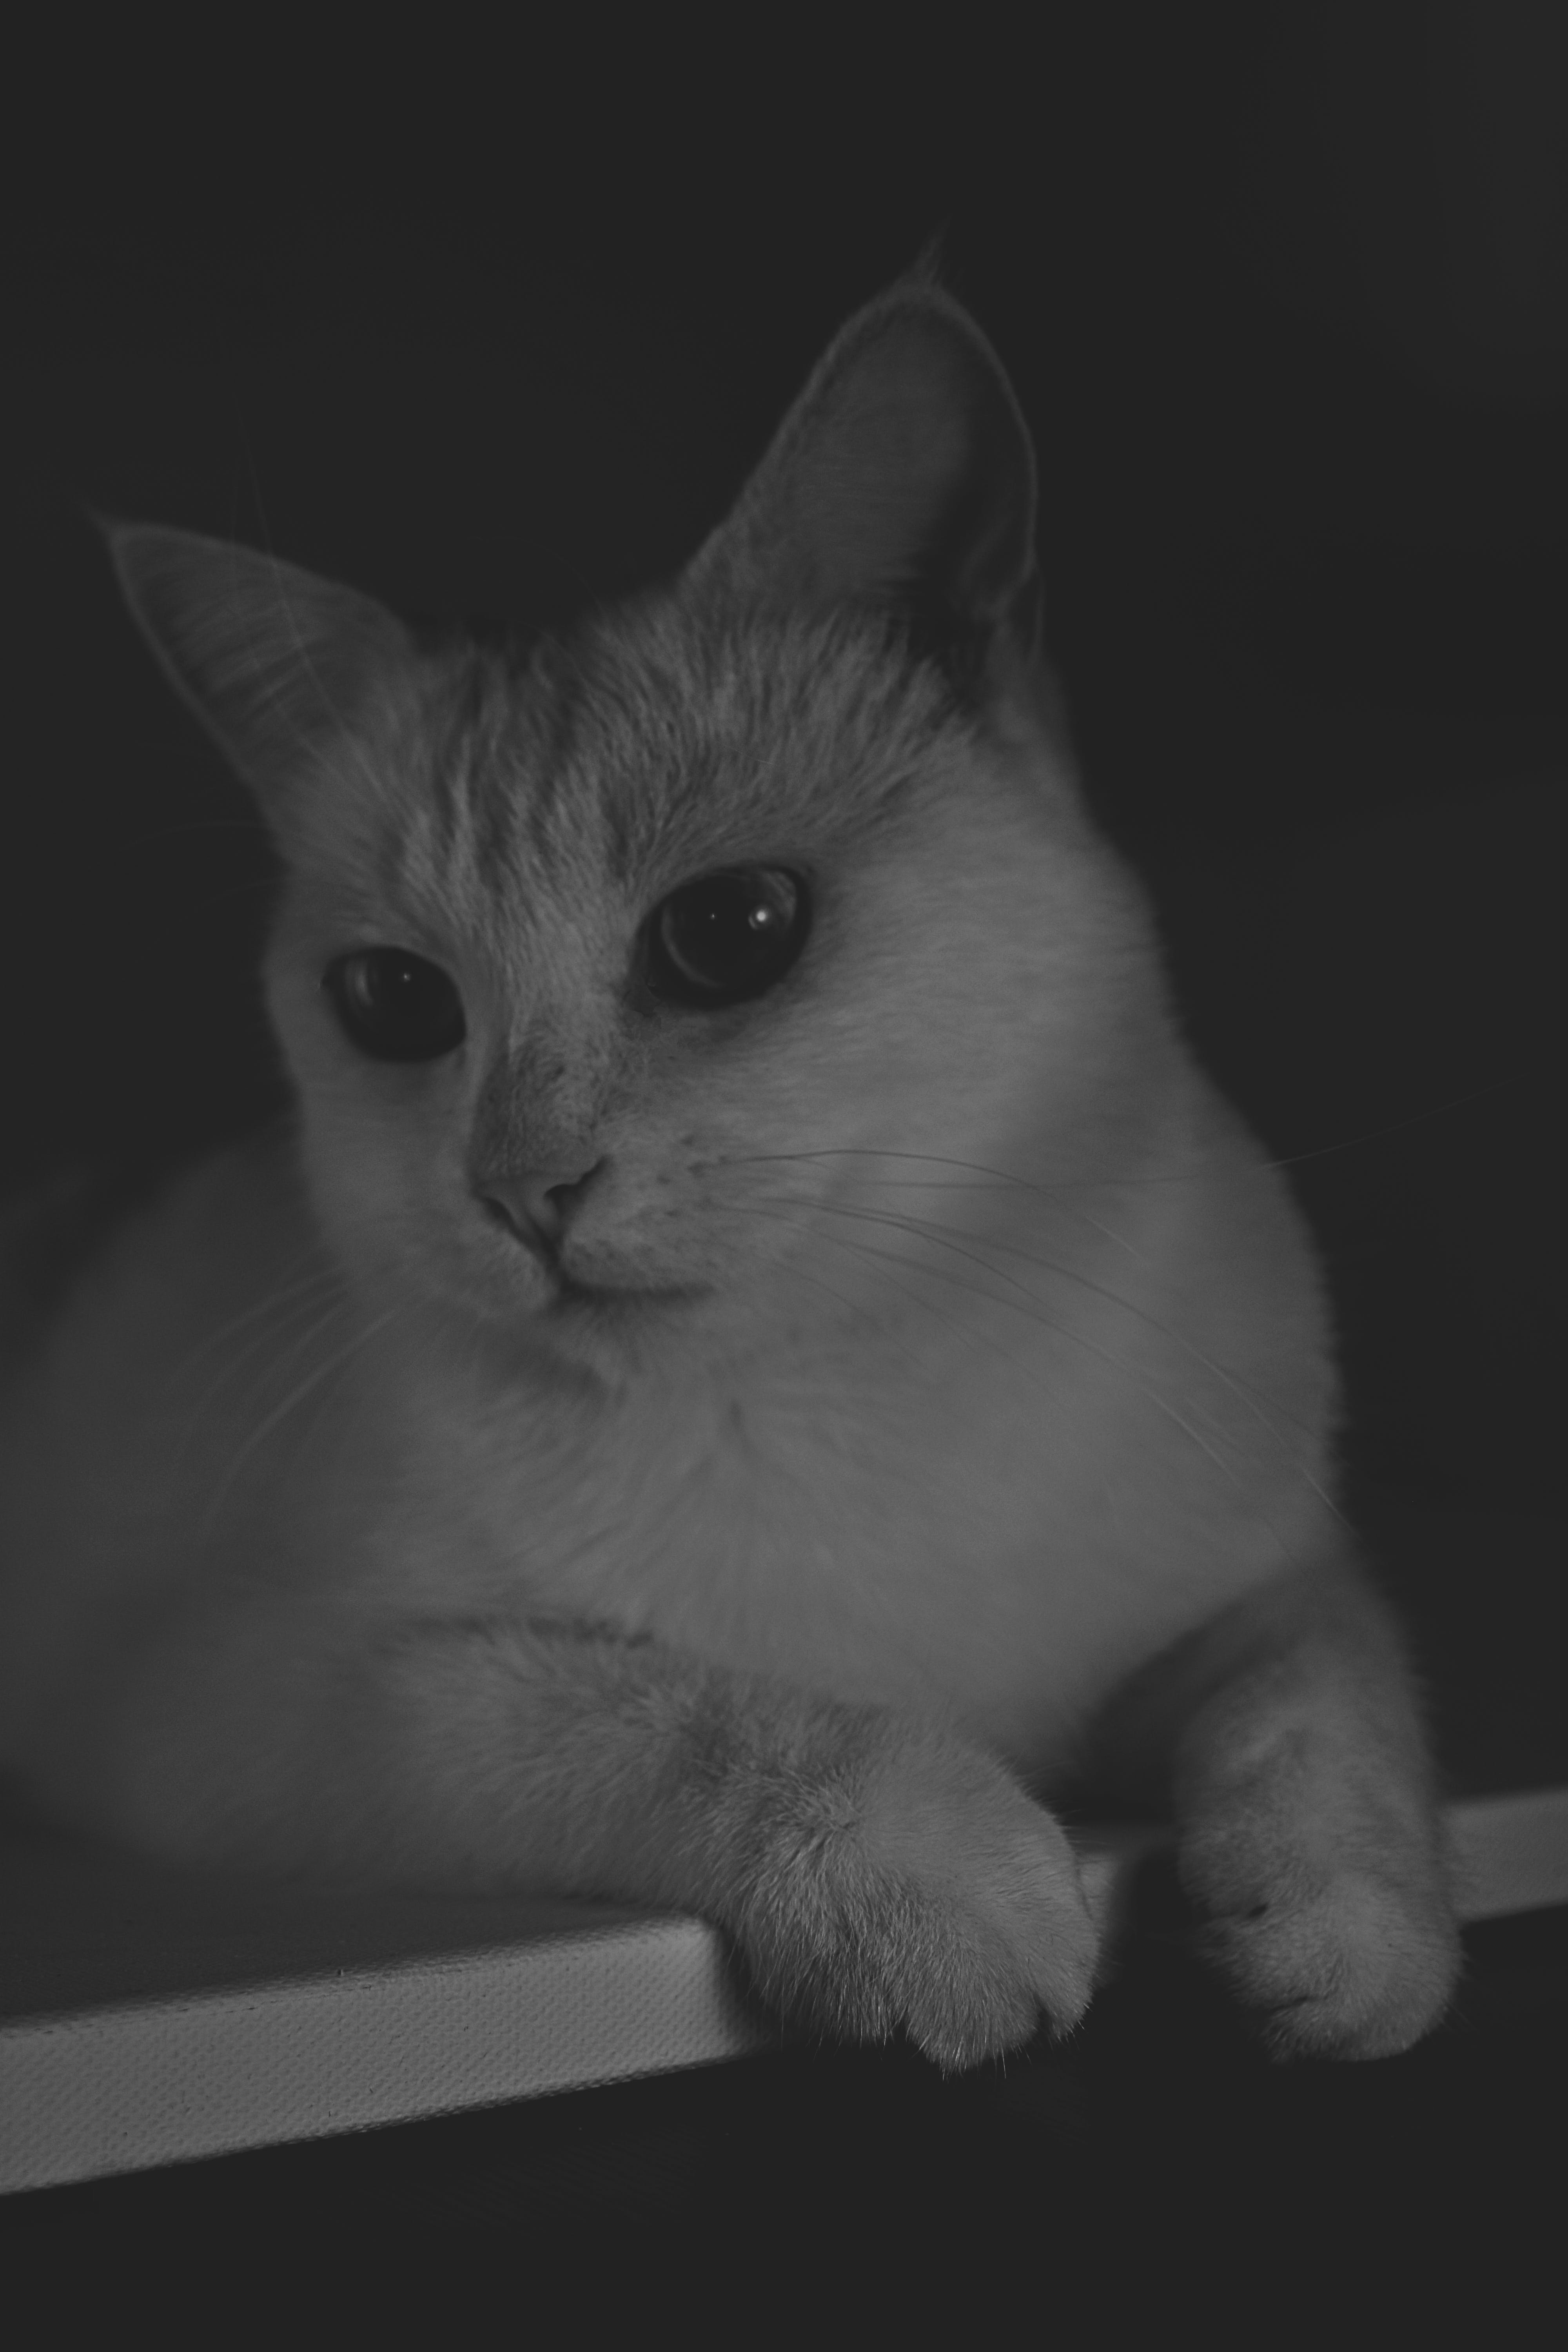 Grayscale Photography Of Short-fur Cat